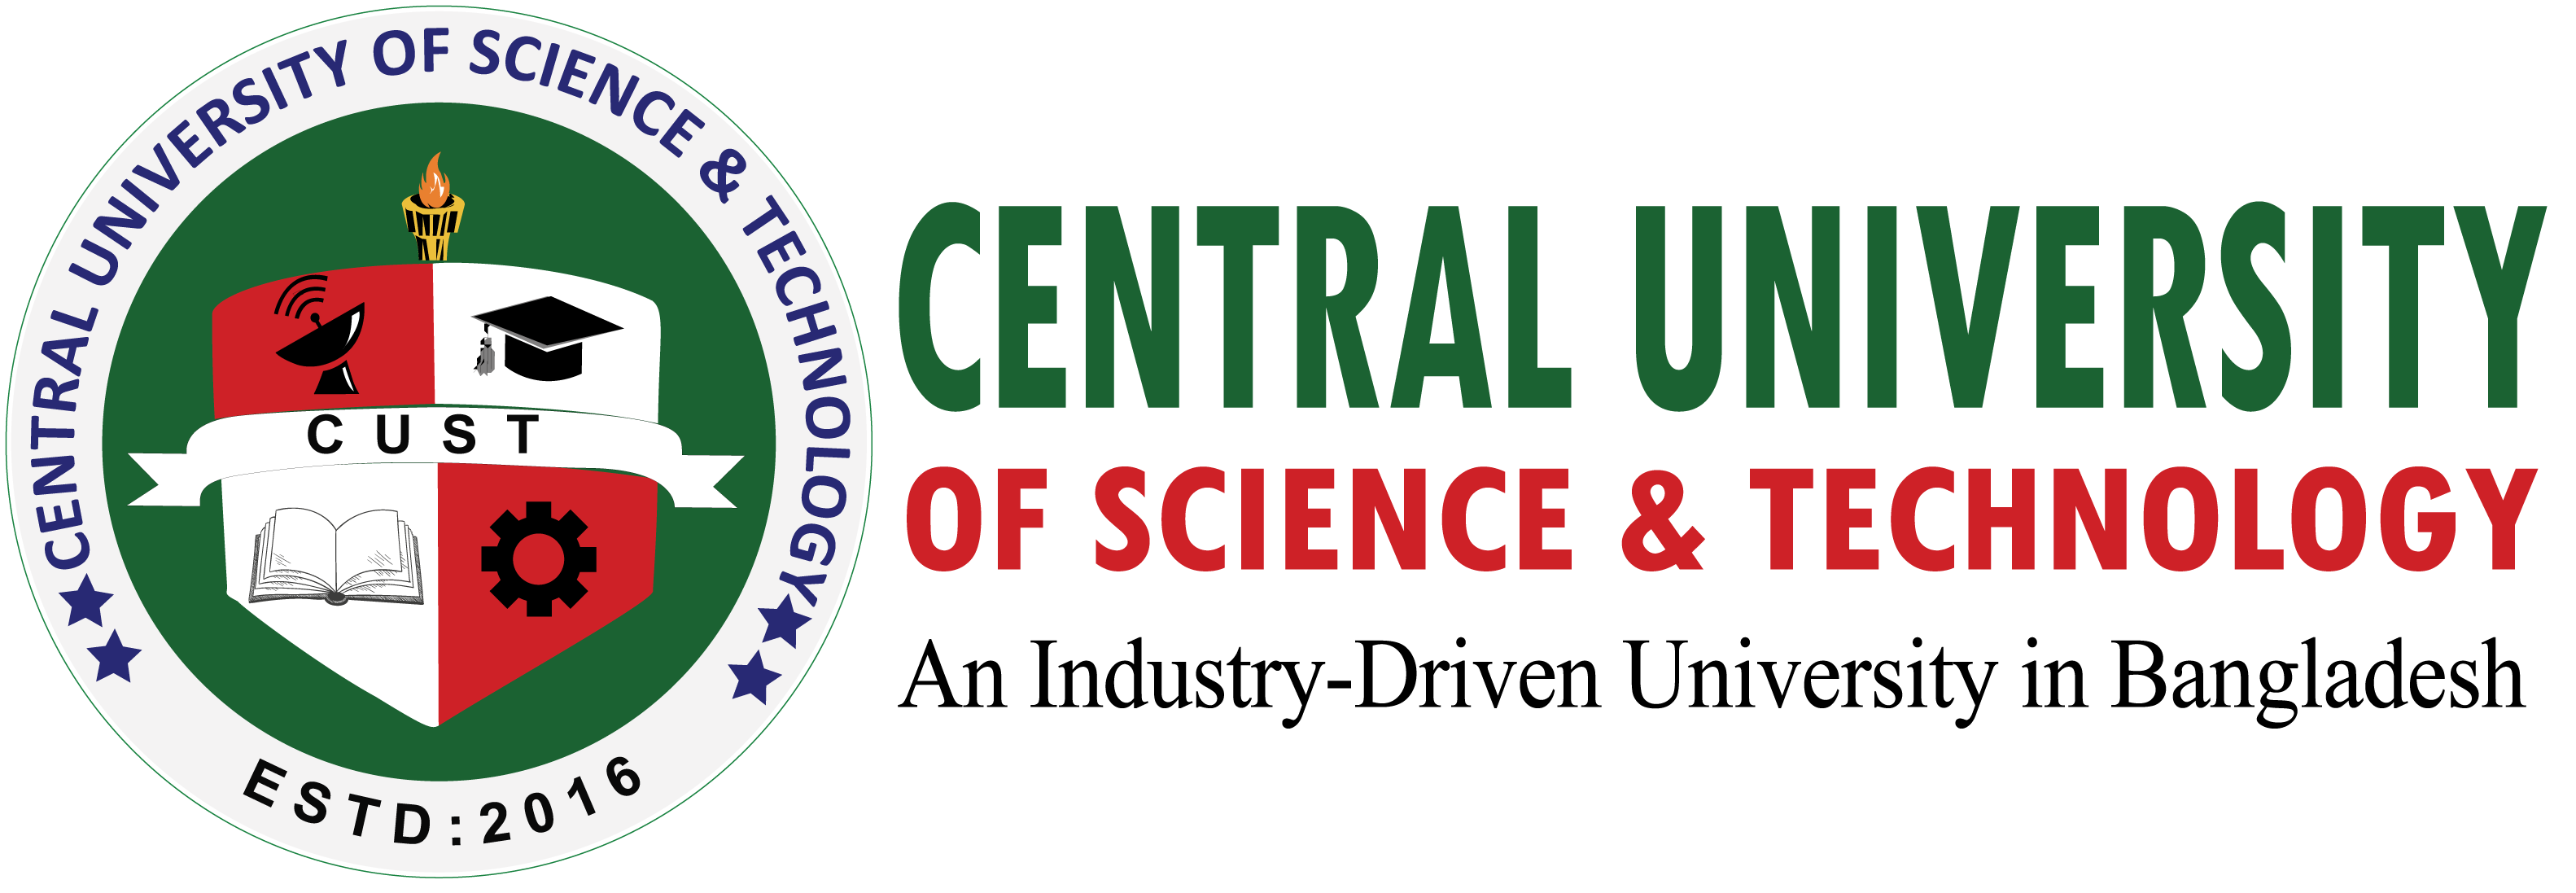 International Admission - Central University of Science & Technology